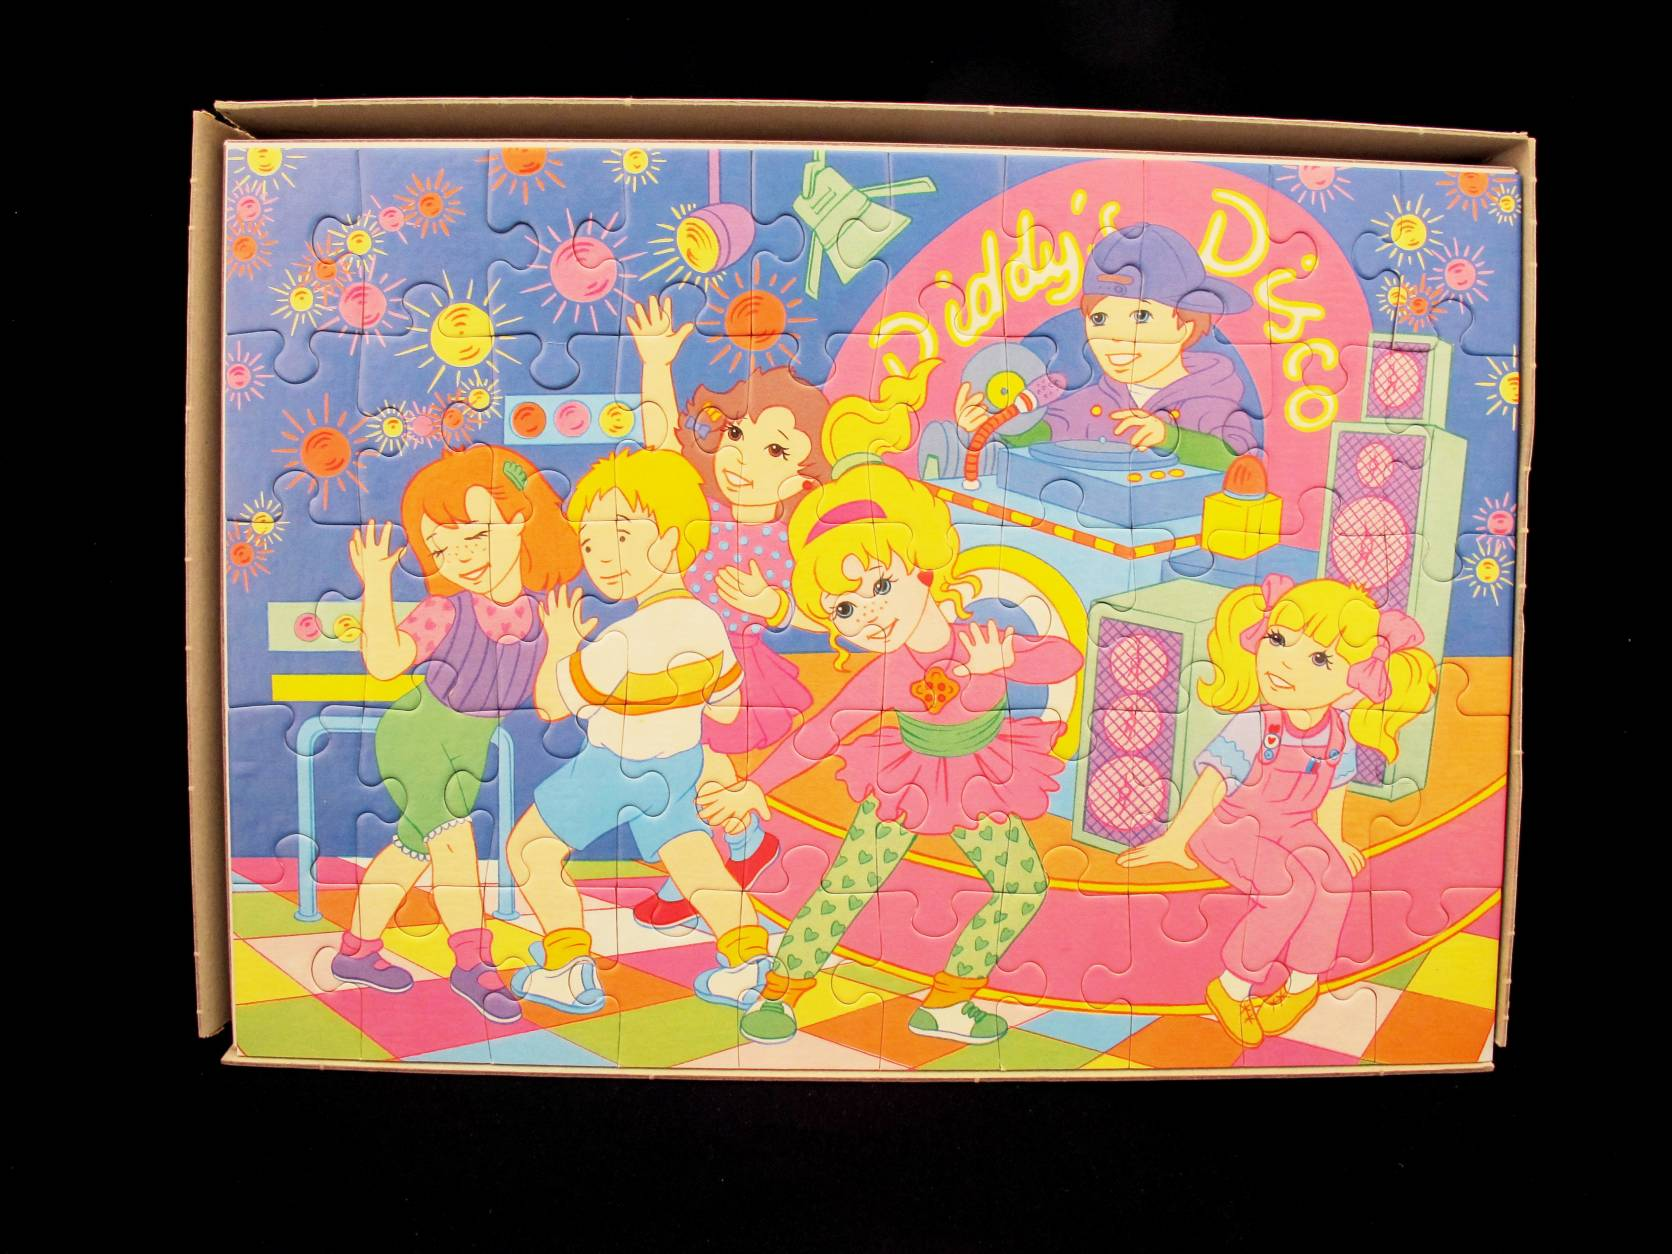 1992 Puzzel Diddys Disco Polly Pocket (2)